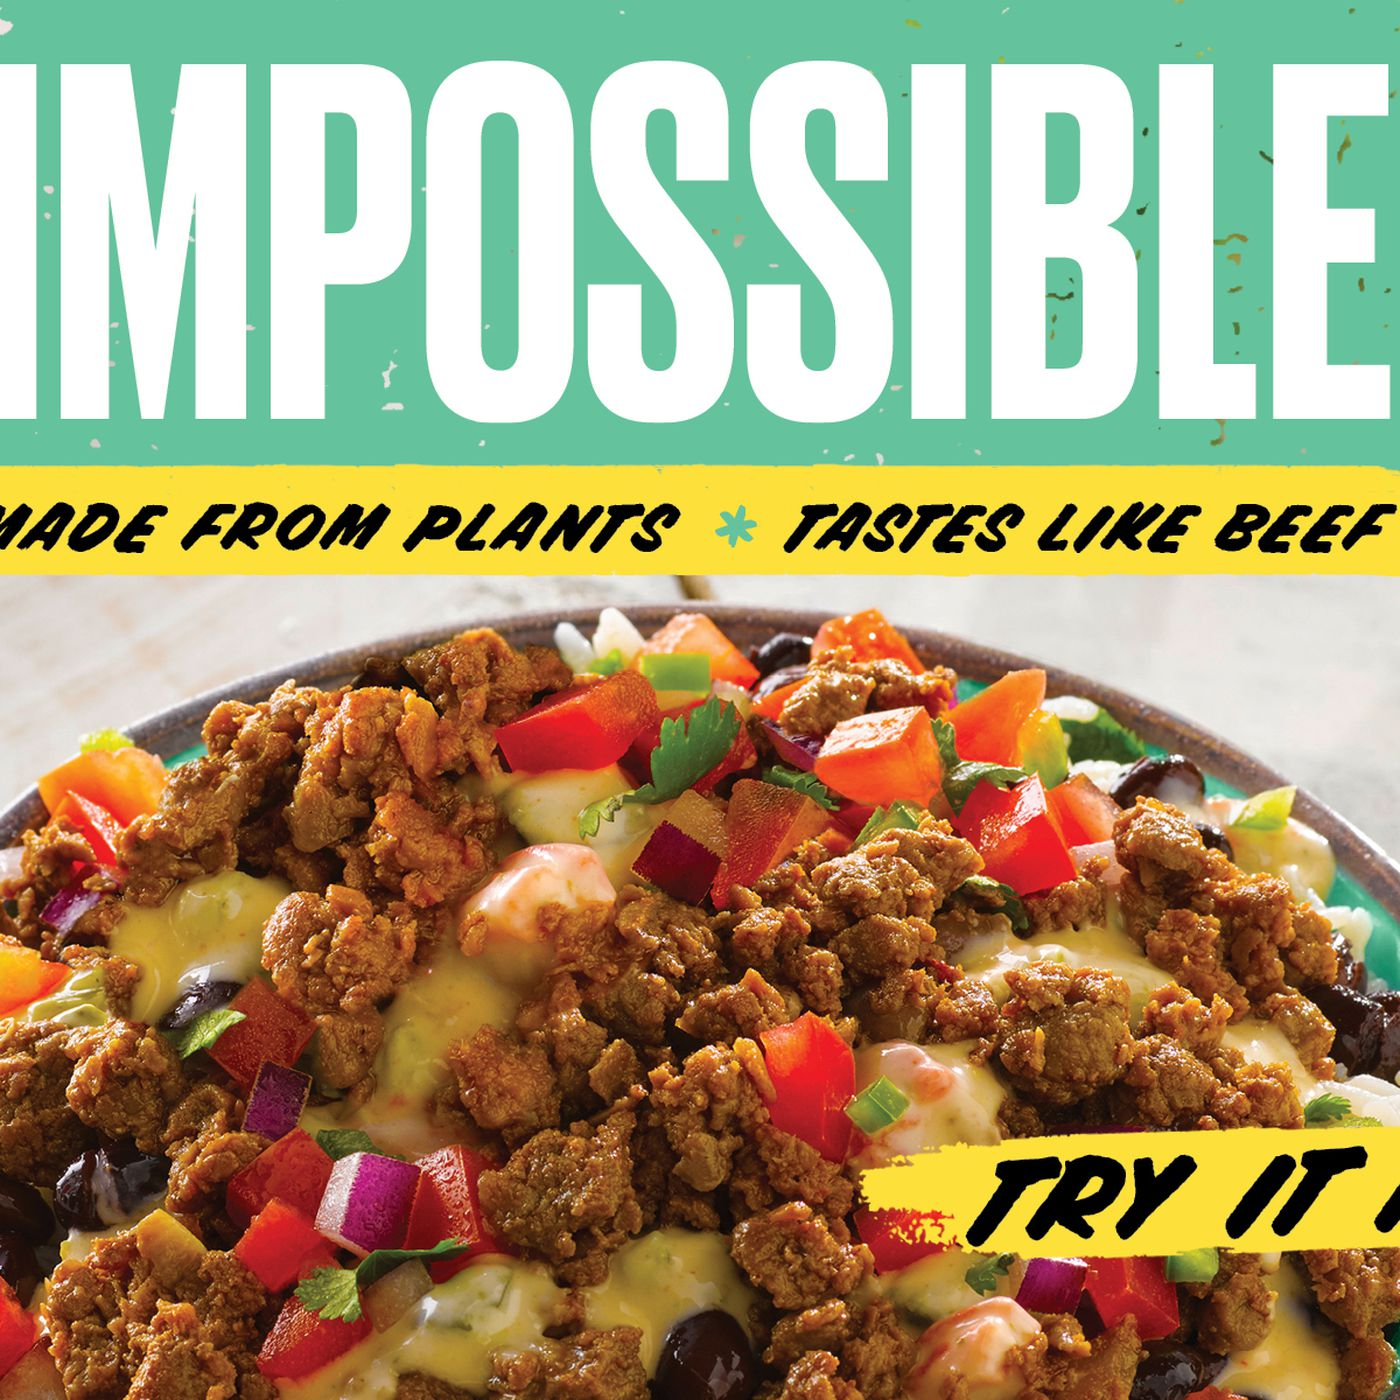 Qdoba's Impossible Meat tacos and bowls are 100% meatless - Vox